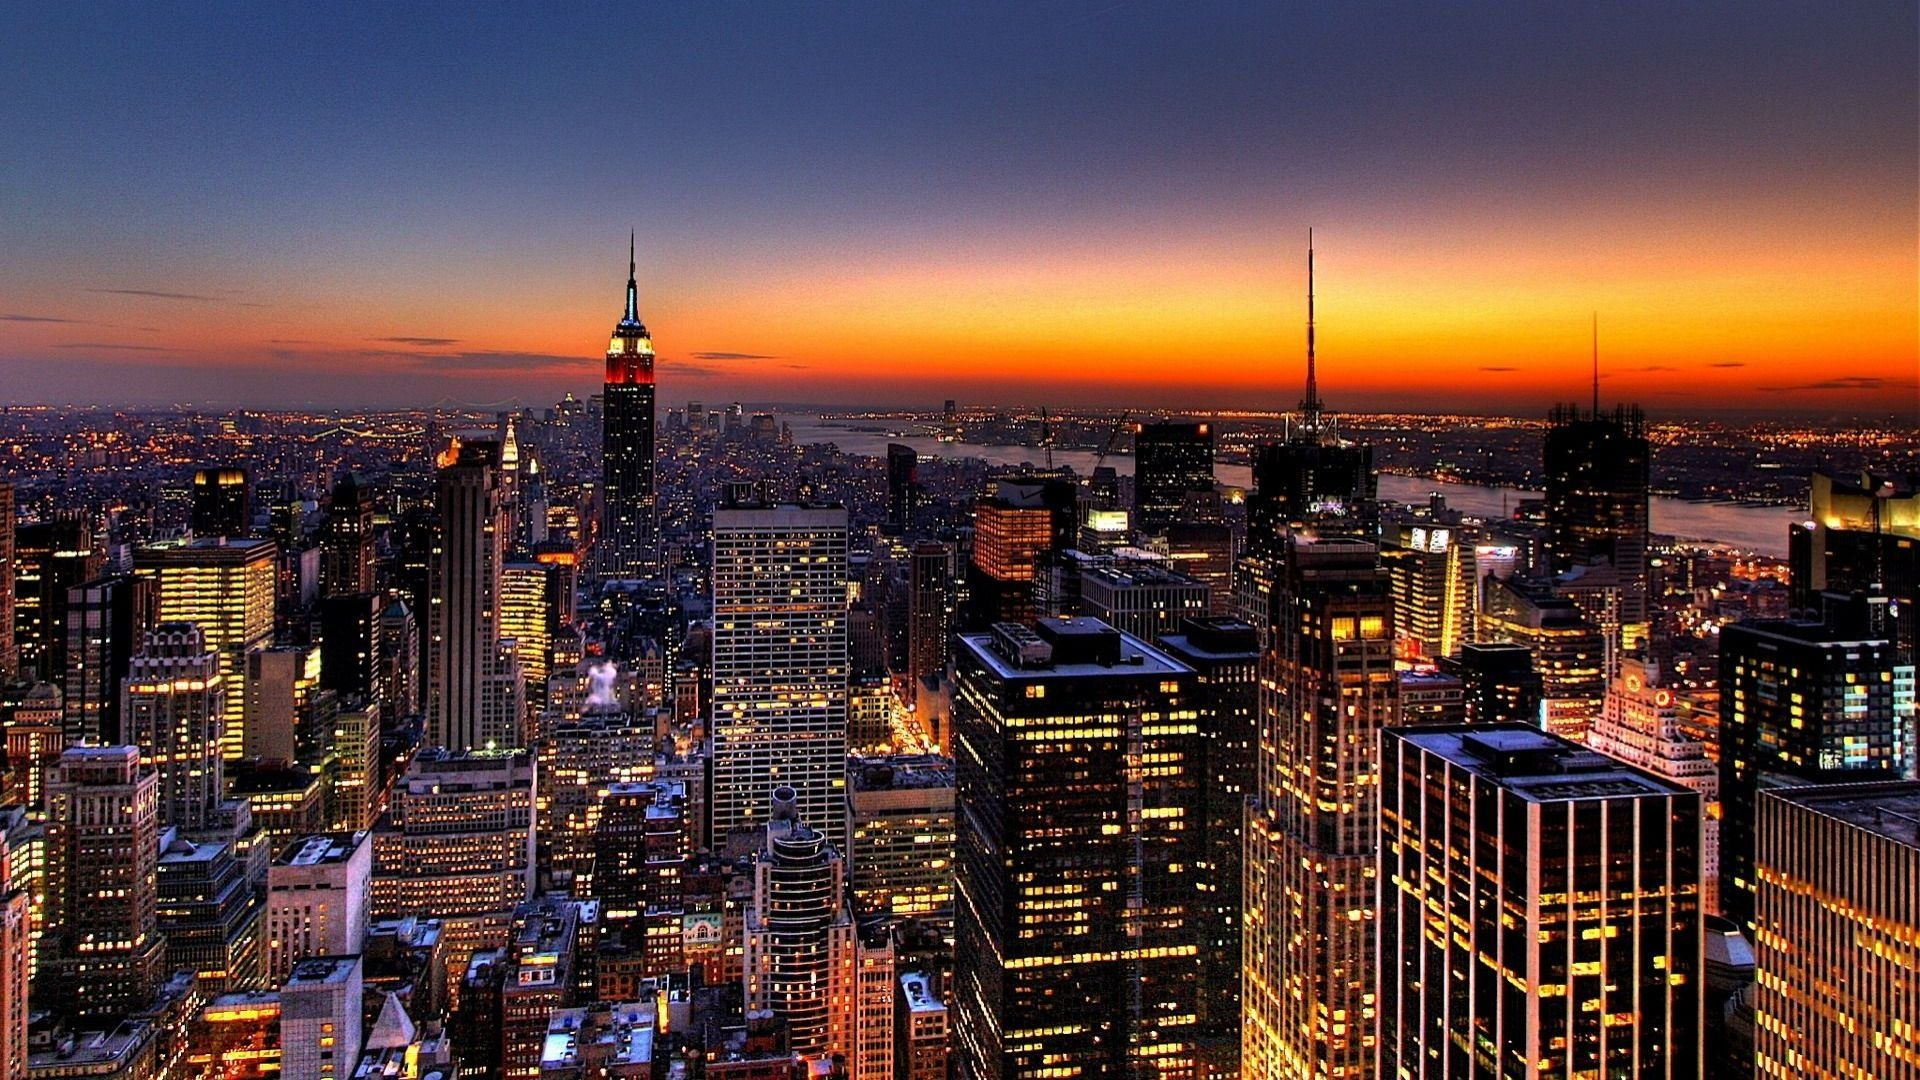 nyc, new york, find a limo service in new york, hd photo, skyline